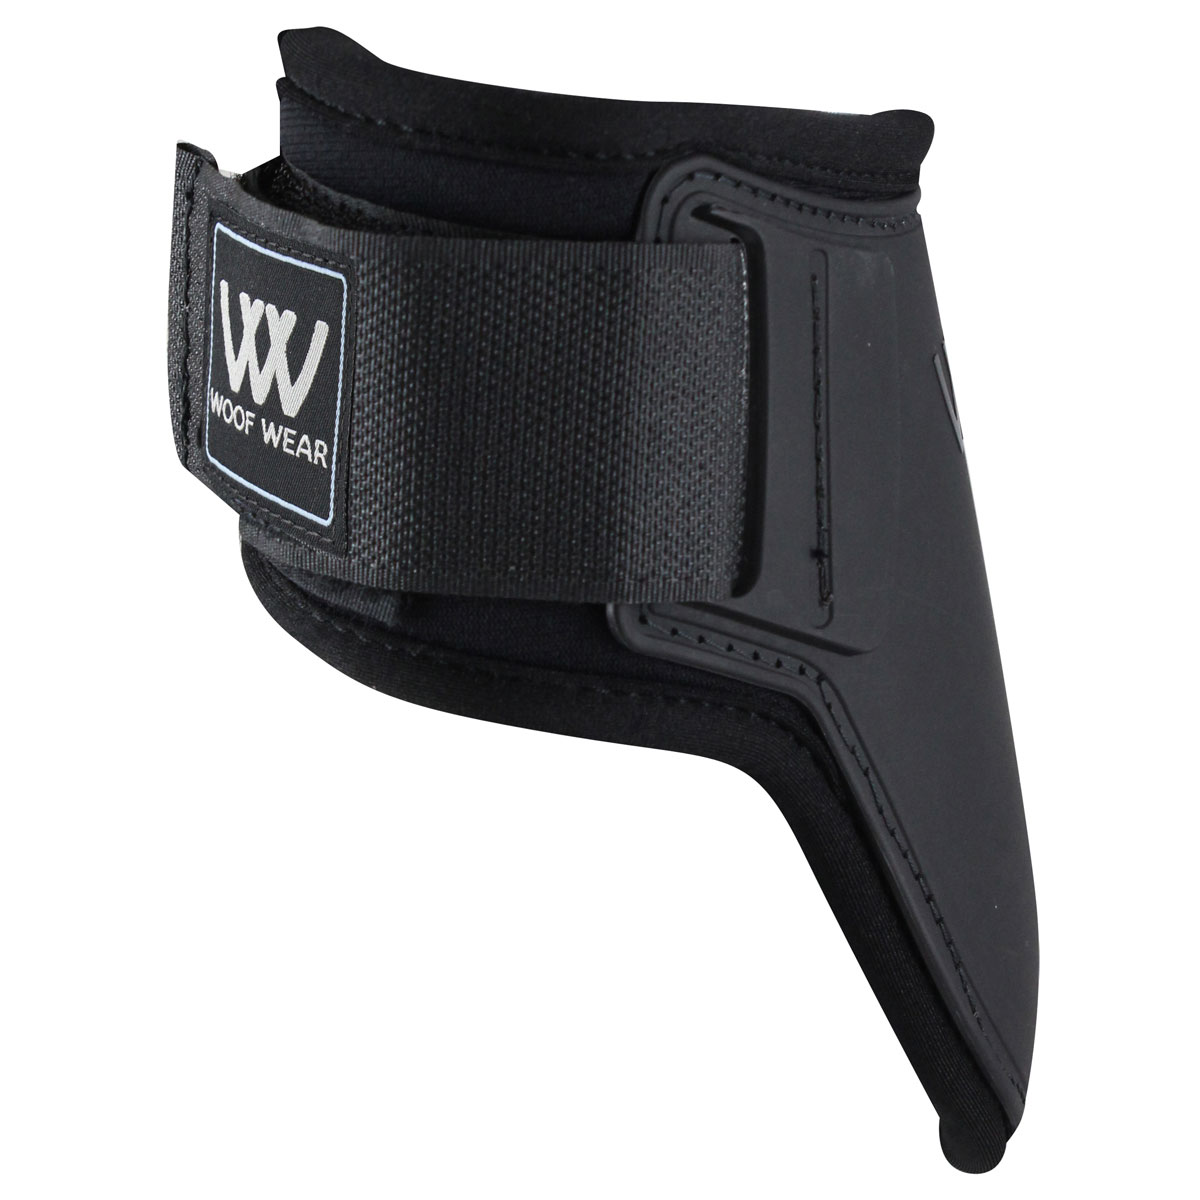 Woof Wear PRO FETLOCK BOOT BLACK from schooling to top level competition